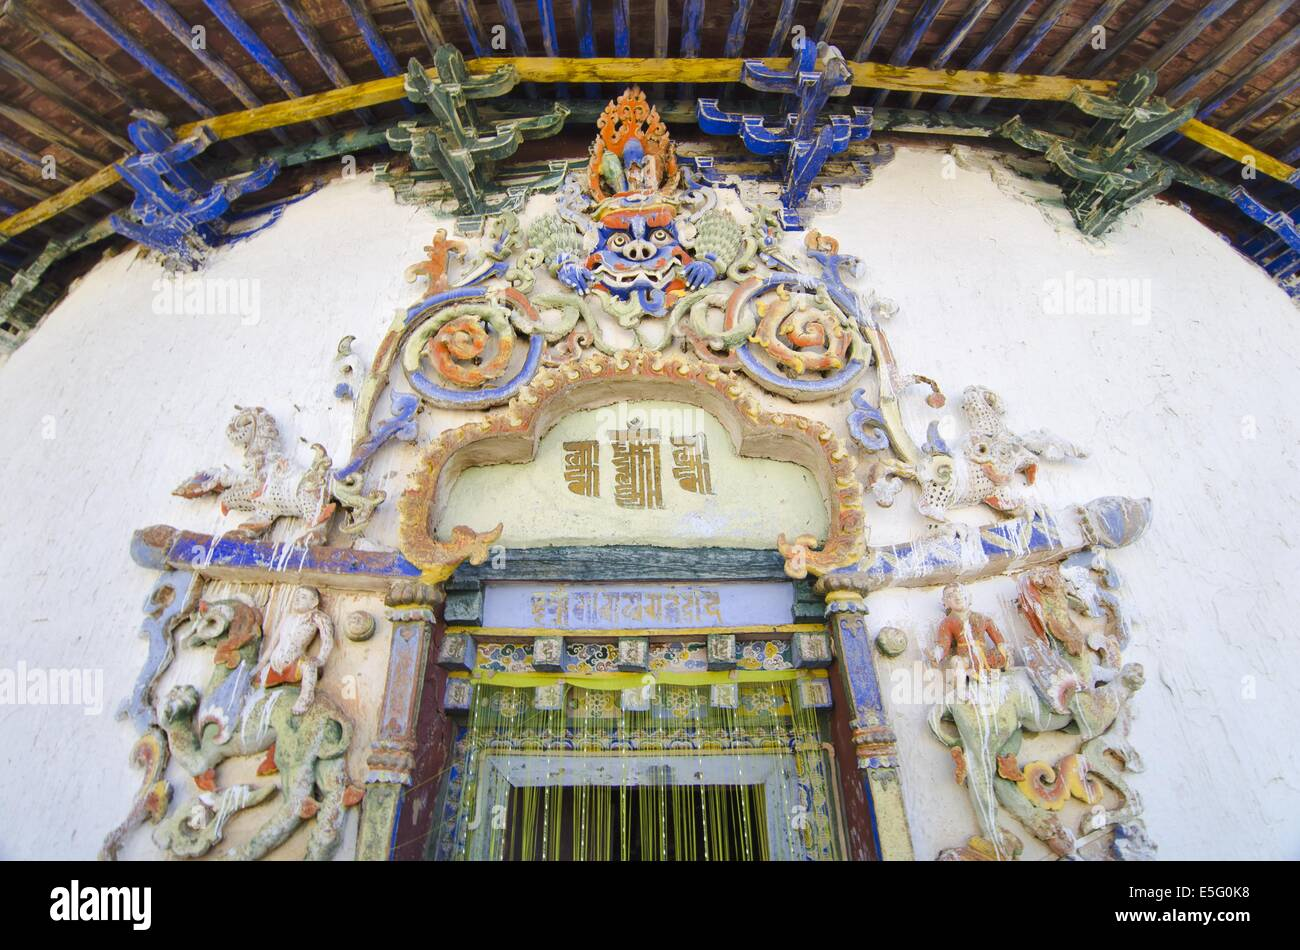 Entrance of a Buddhist chapel in the Gyantse Kumbum in Tibet - Stock Image